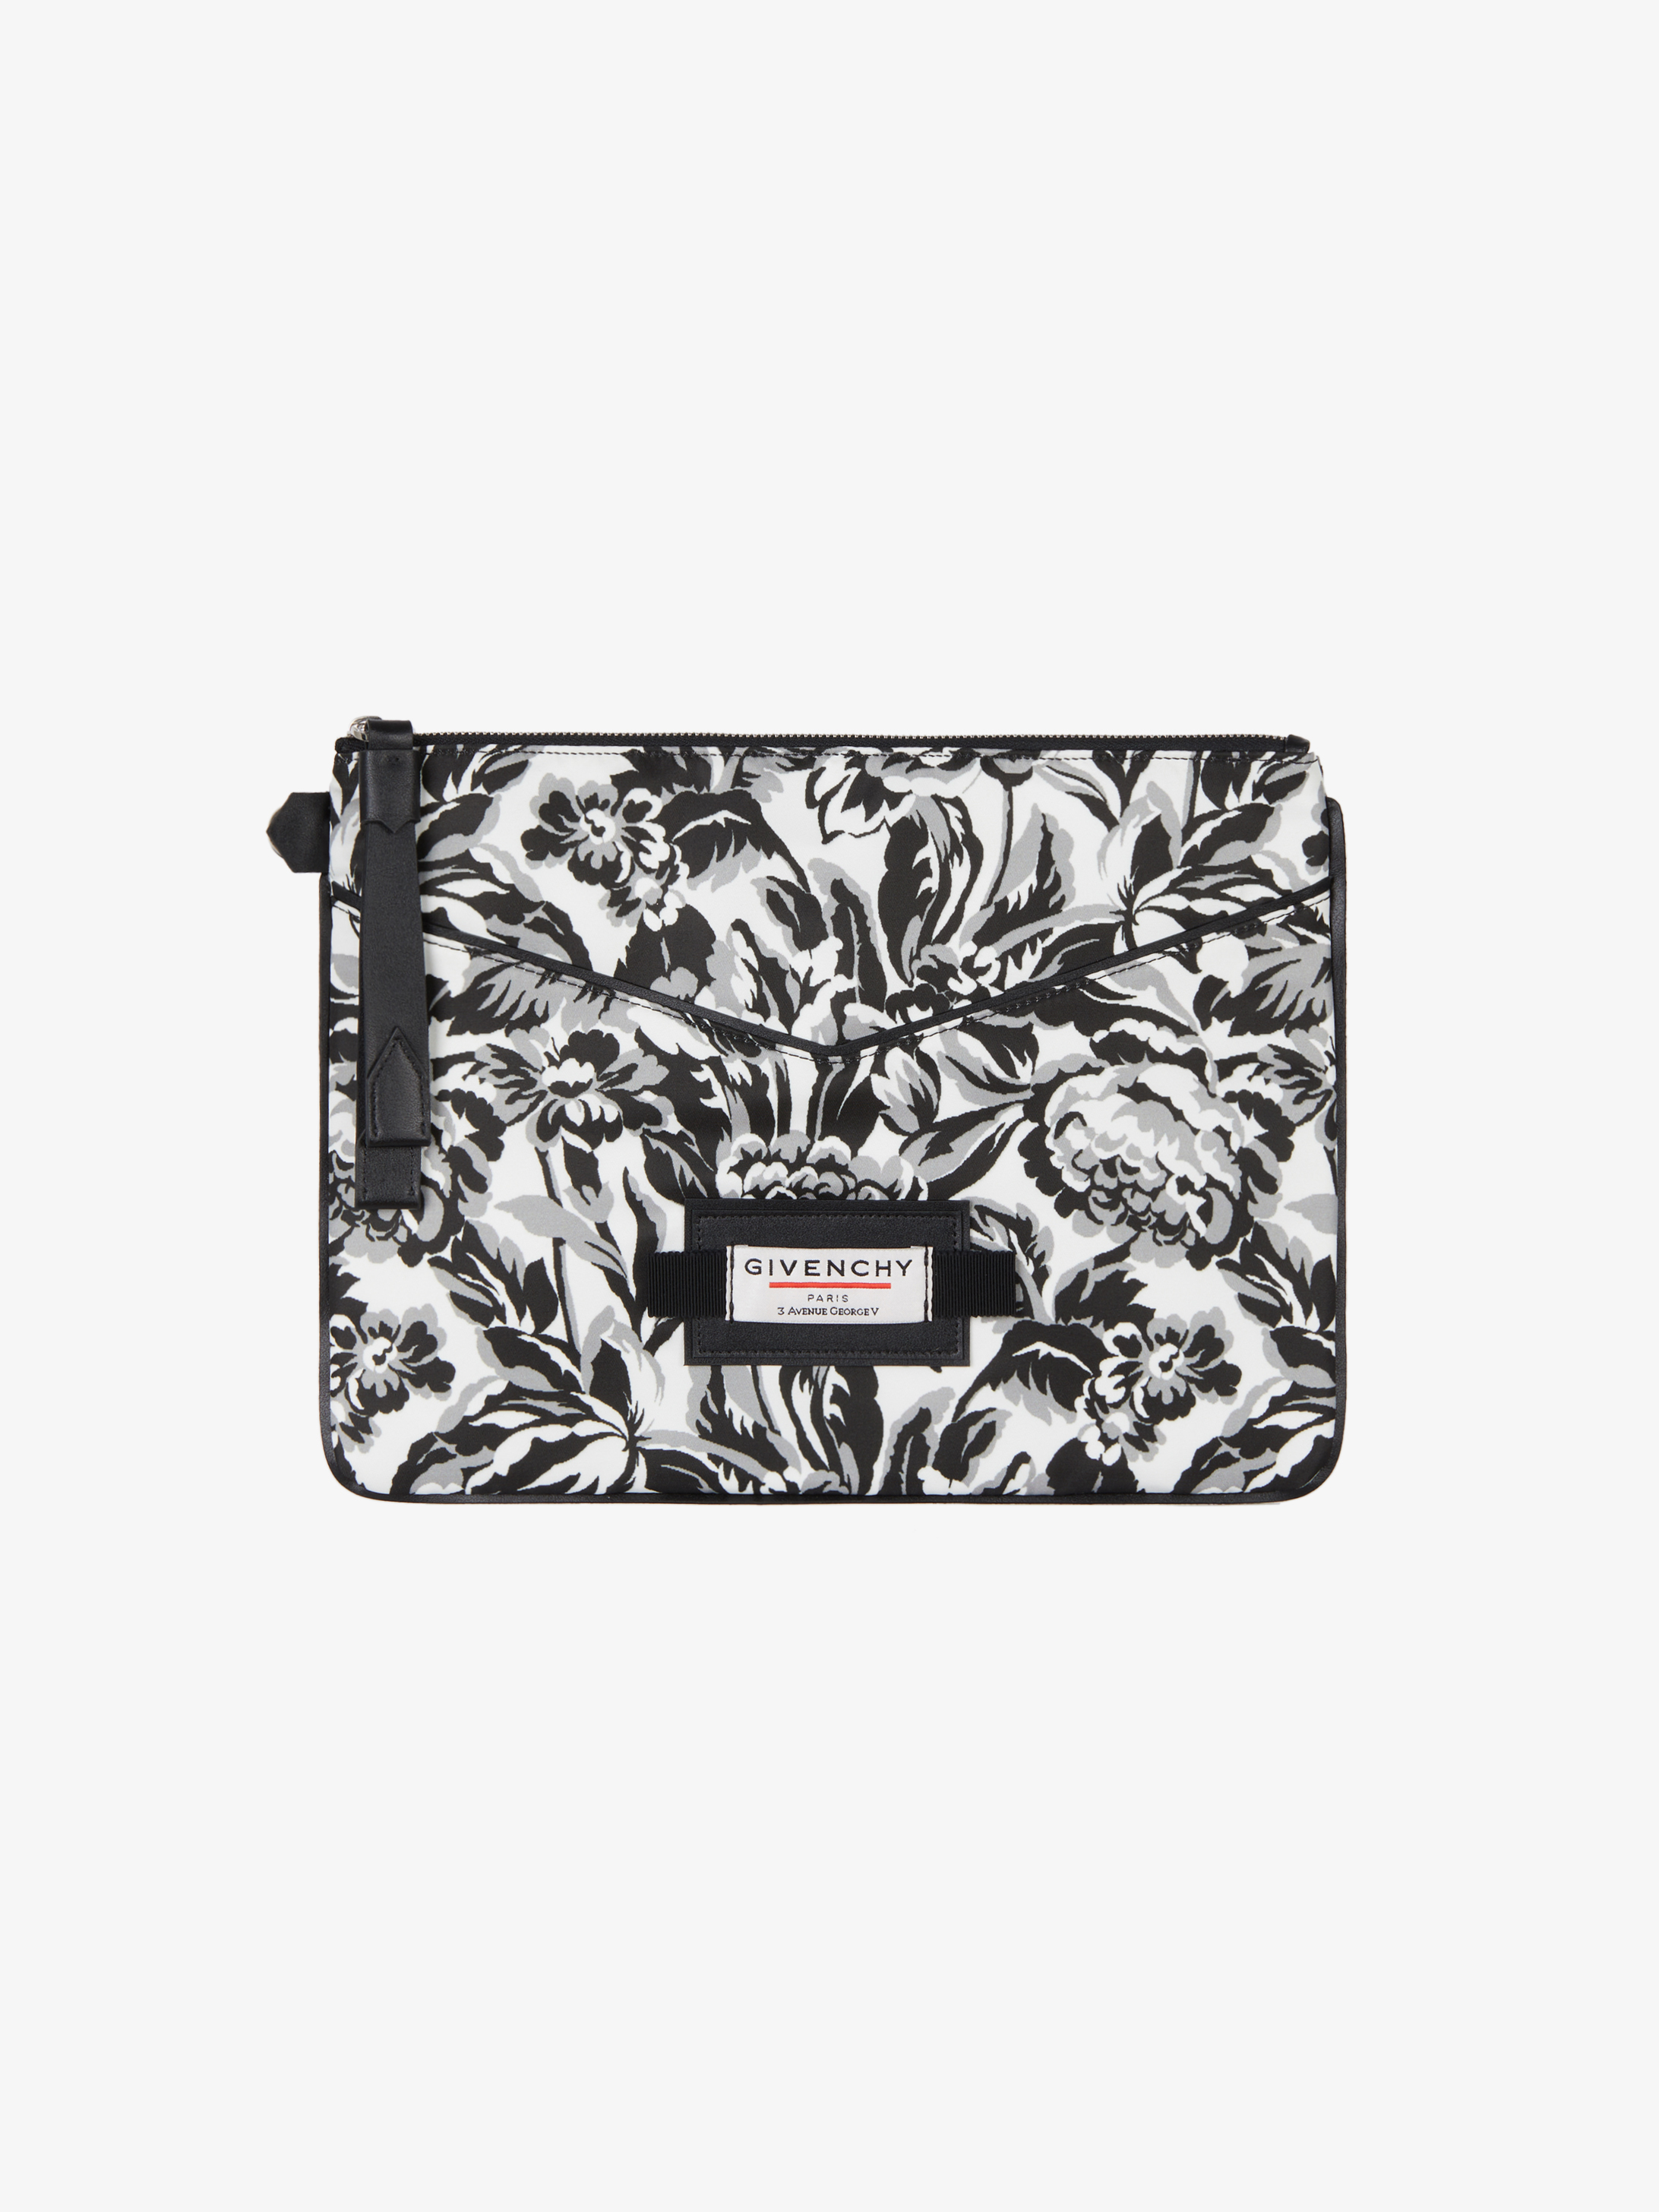 Large pouch in floral printed nylon